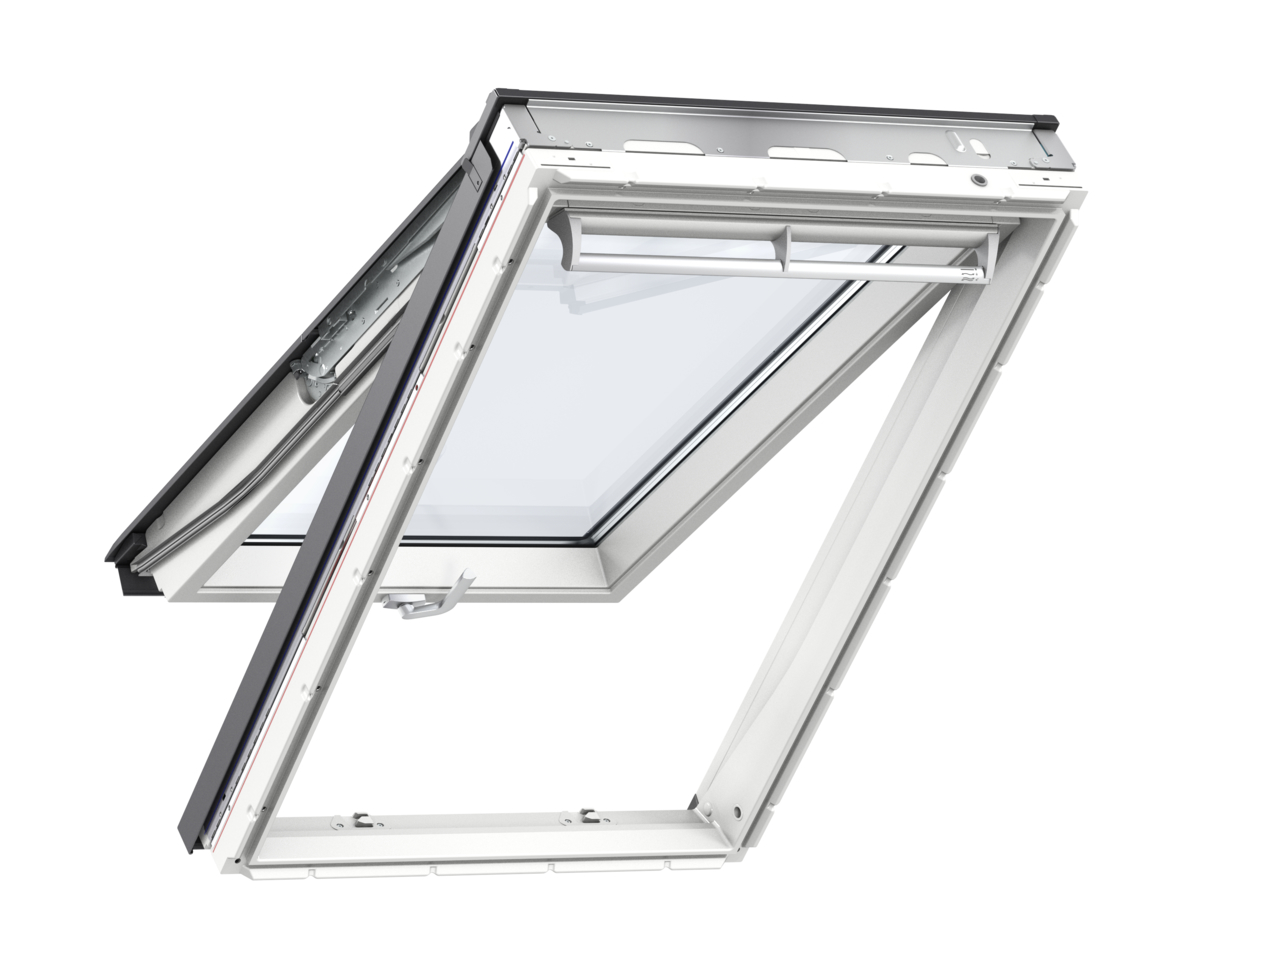 Velux GPU PK10 940 x 1600mm Top Hung 66Pane Roof Window - White Polyurethane